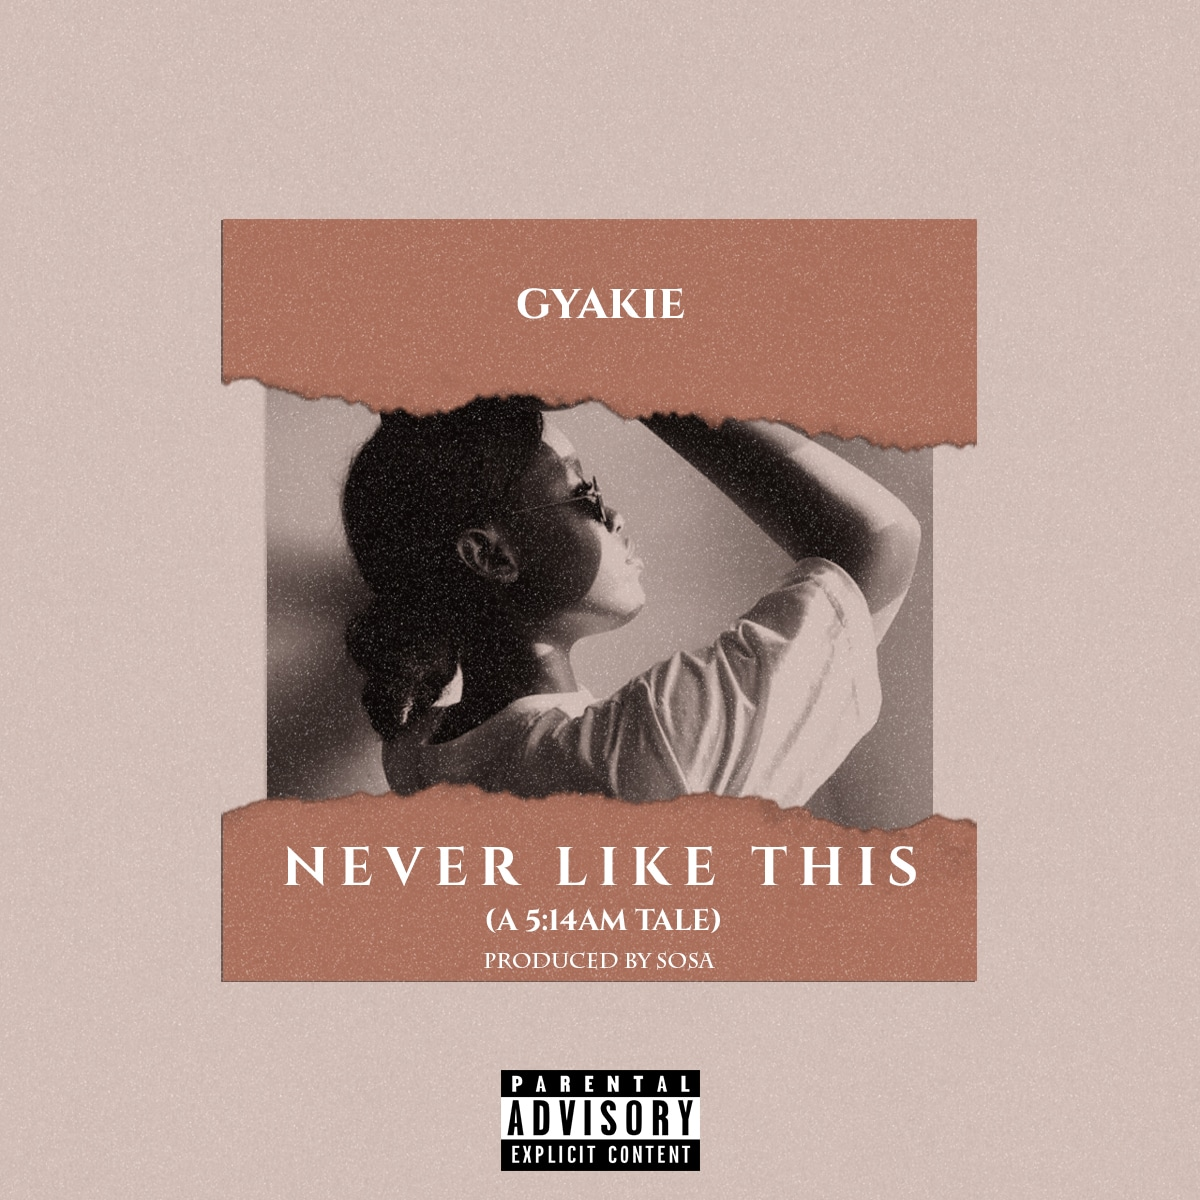 artwork for gyakie never like this